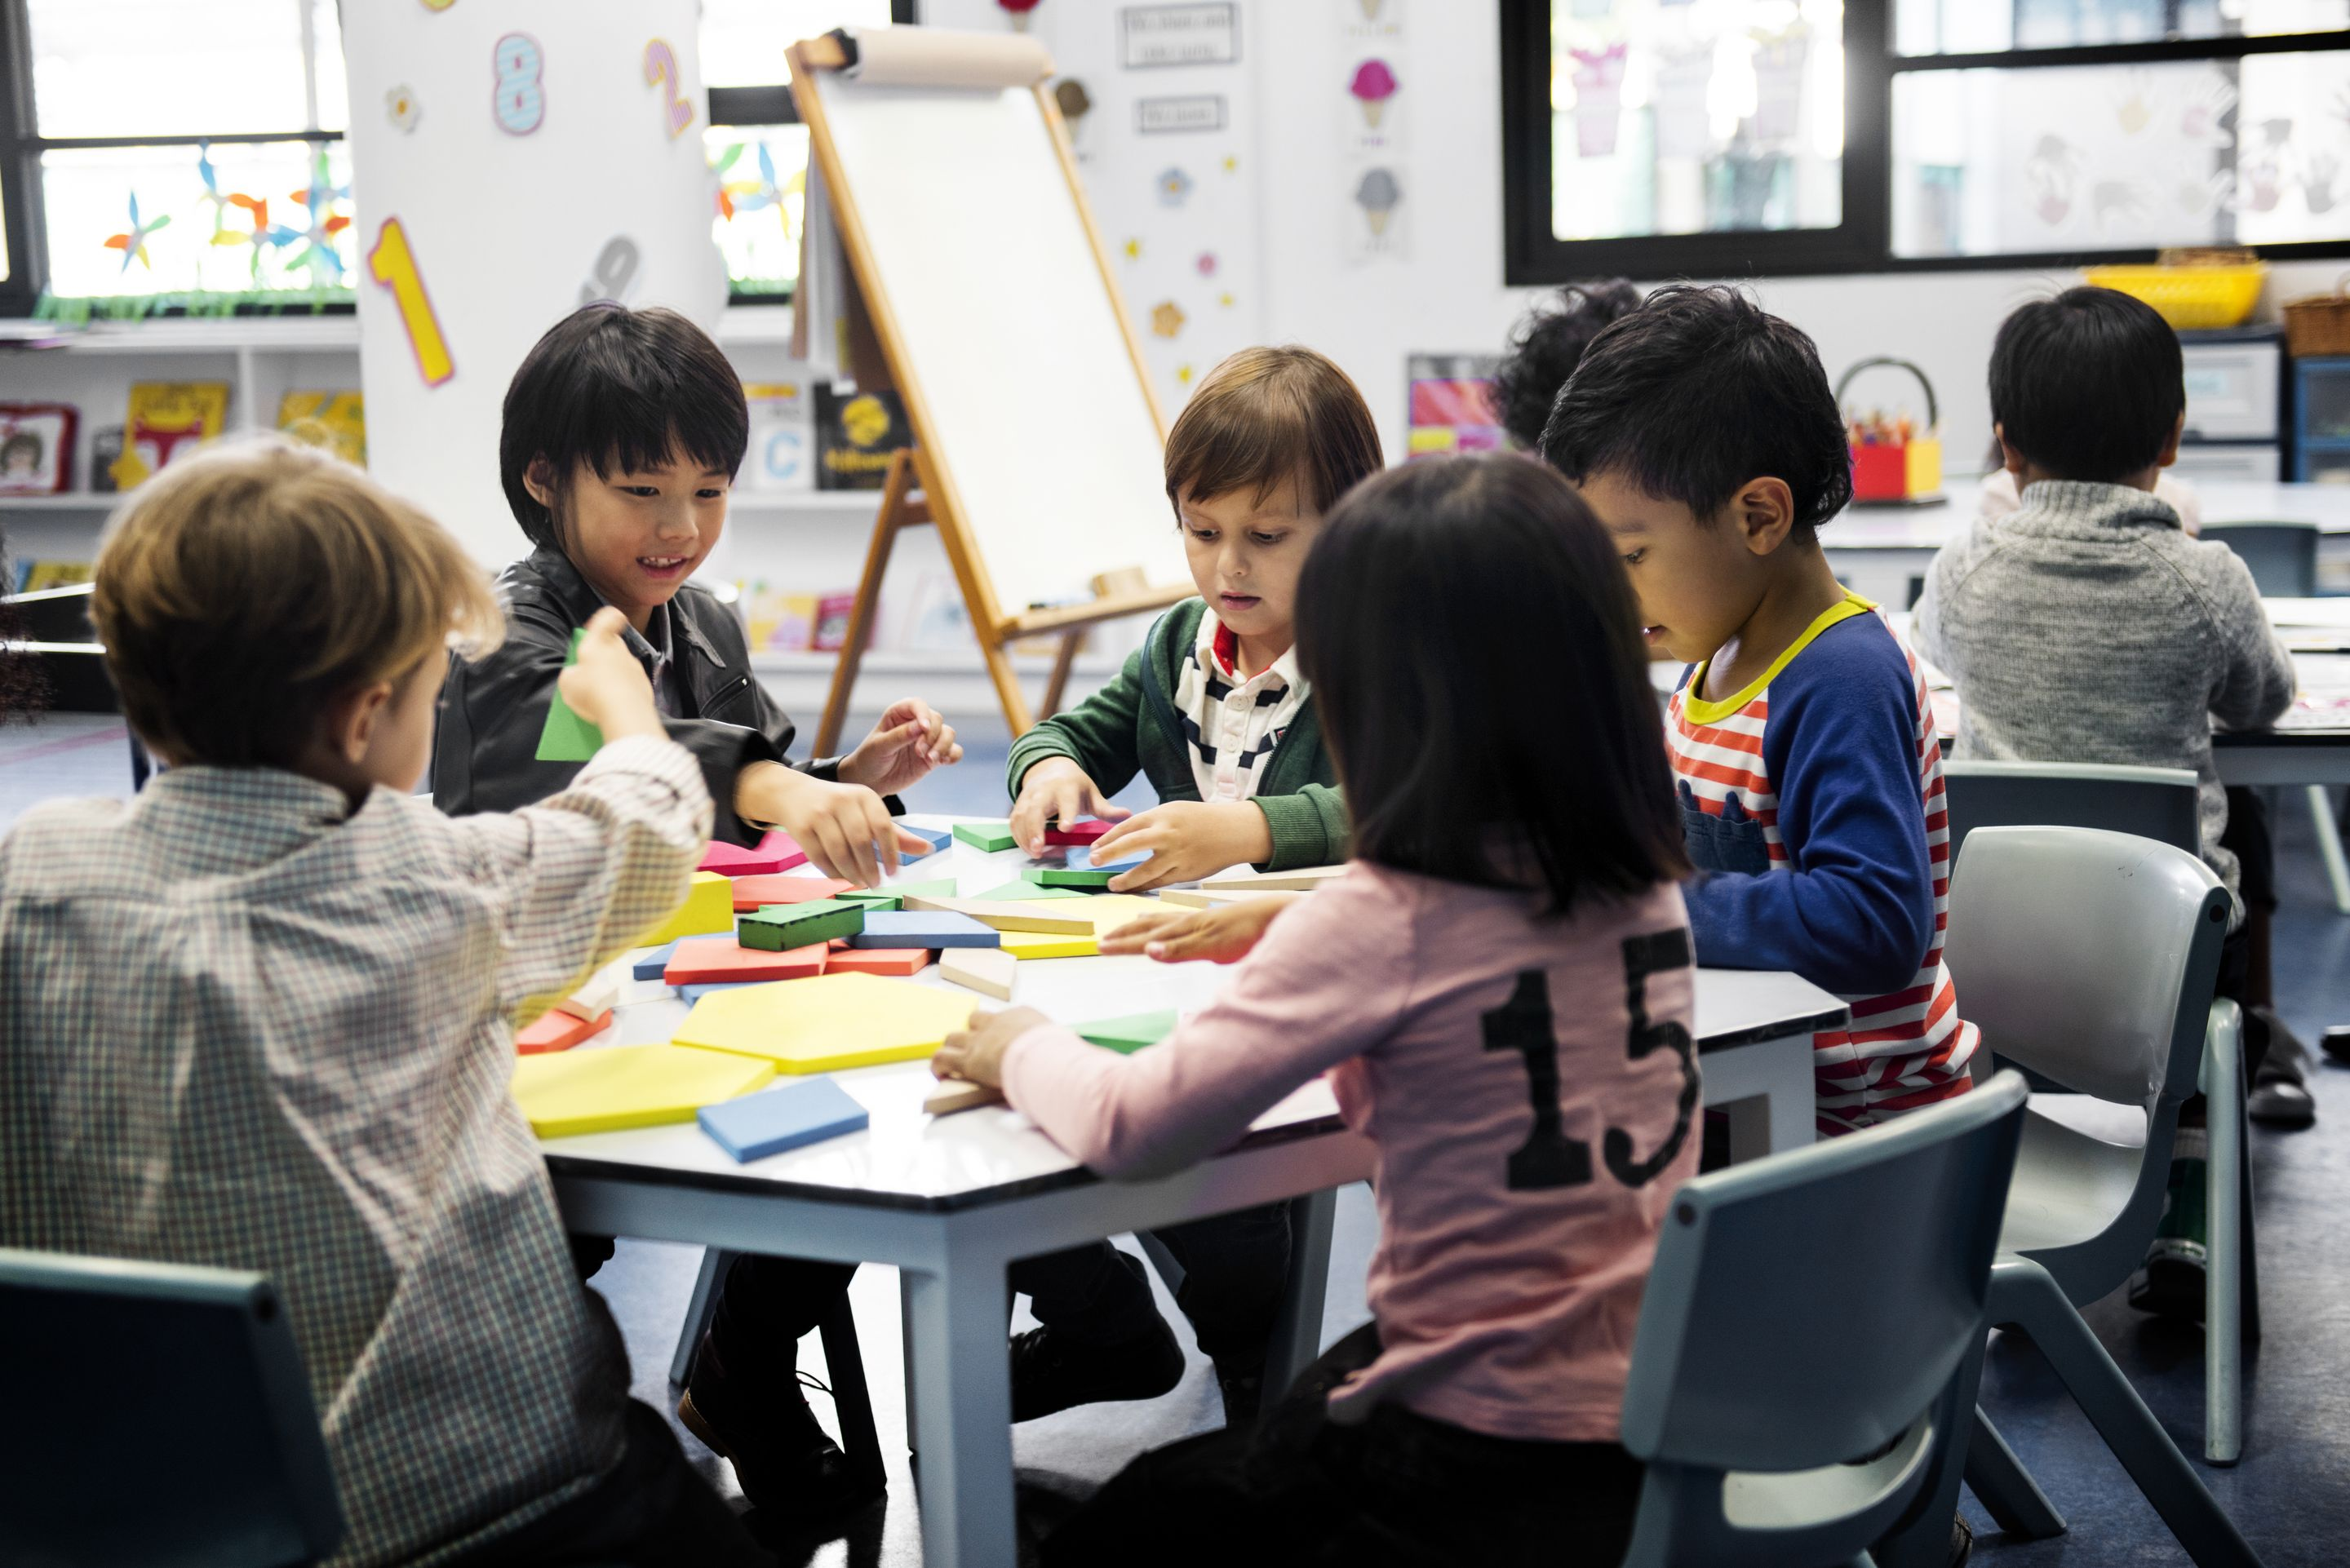 A group of five kindergarten students sitting at a table together, working with blocks in different shapes and sizes